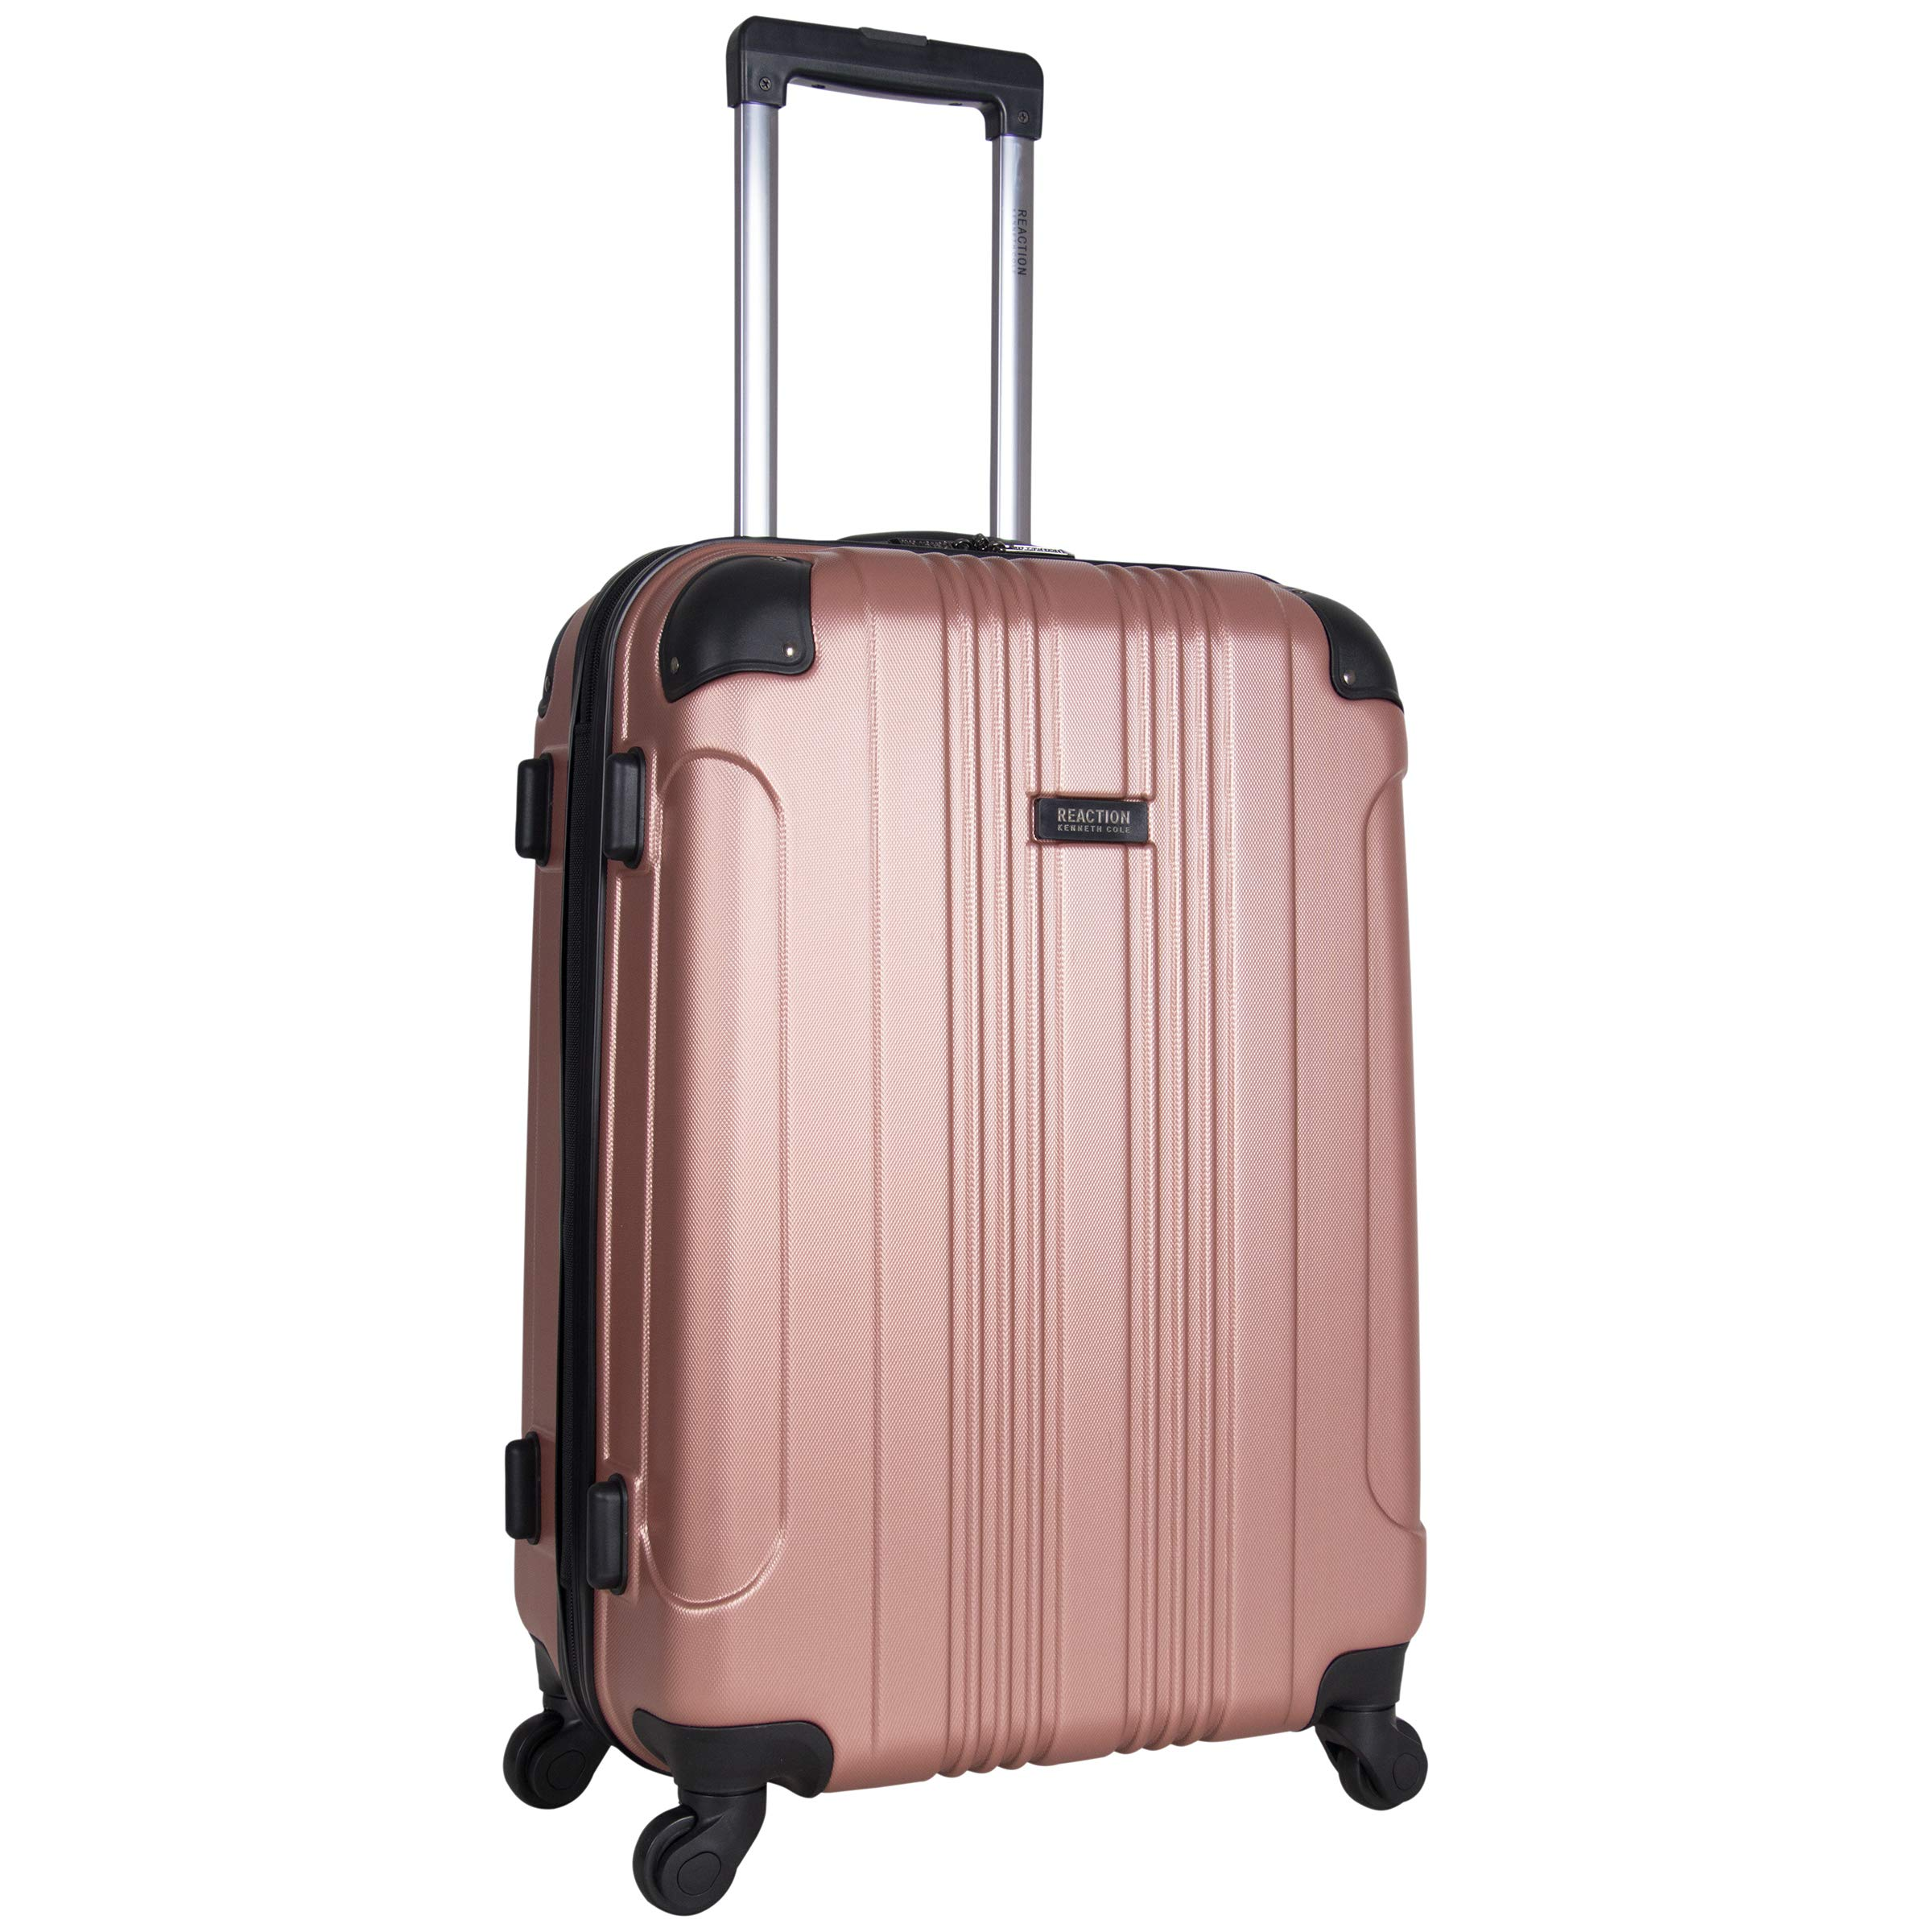 Kenneth Cole Reaction Out Of Bounds 24-Inch Check-Size Lightweight Durable Hardshell 4-Wheel Spinner Travel Luggage, Rose Gold by Kenneth Cole REACTION